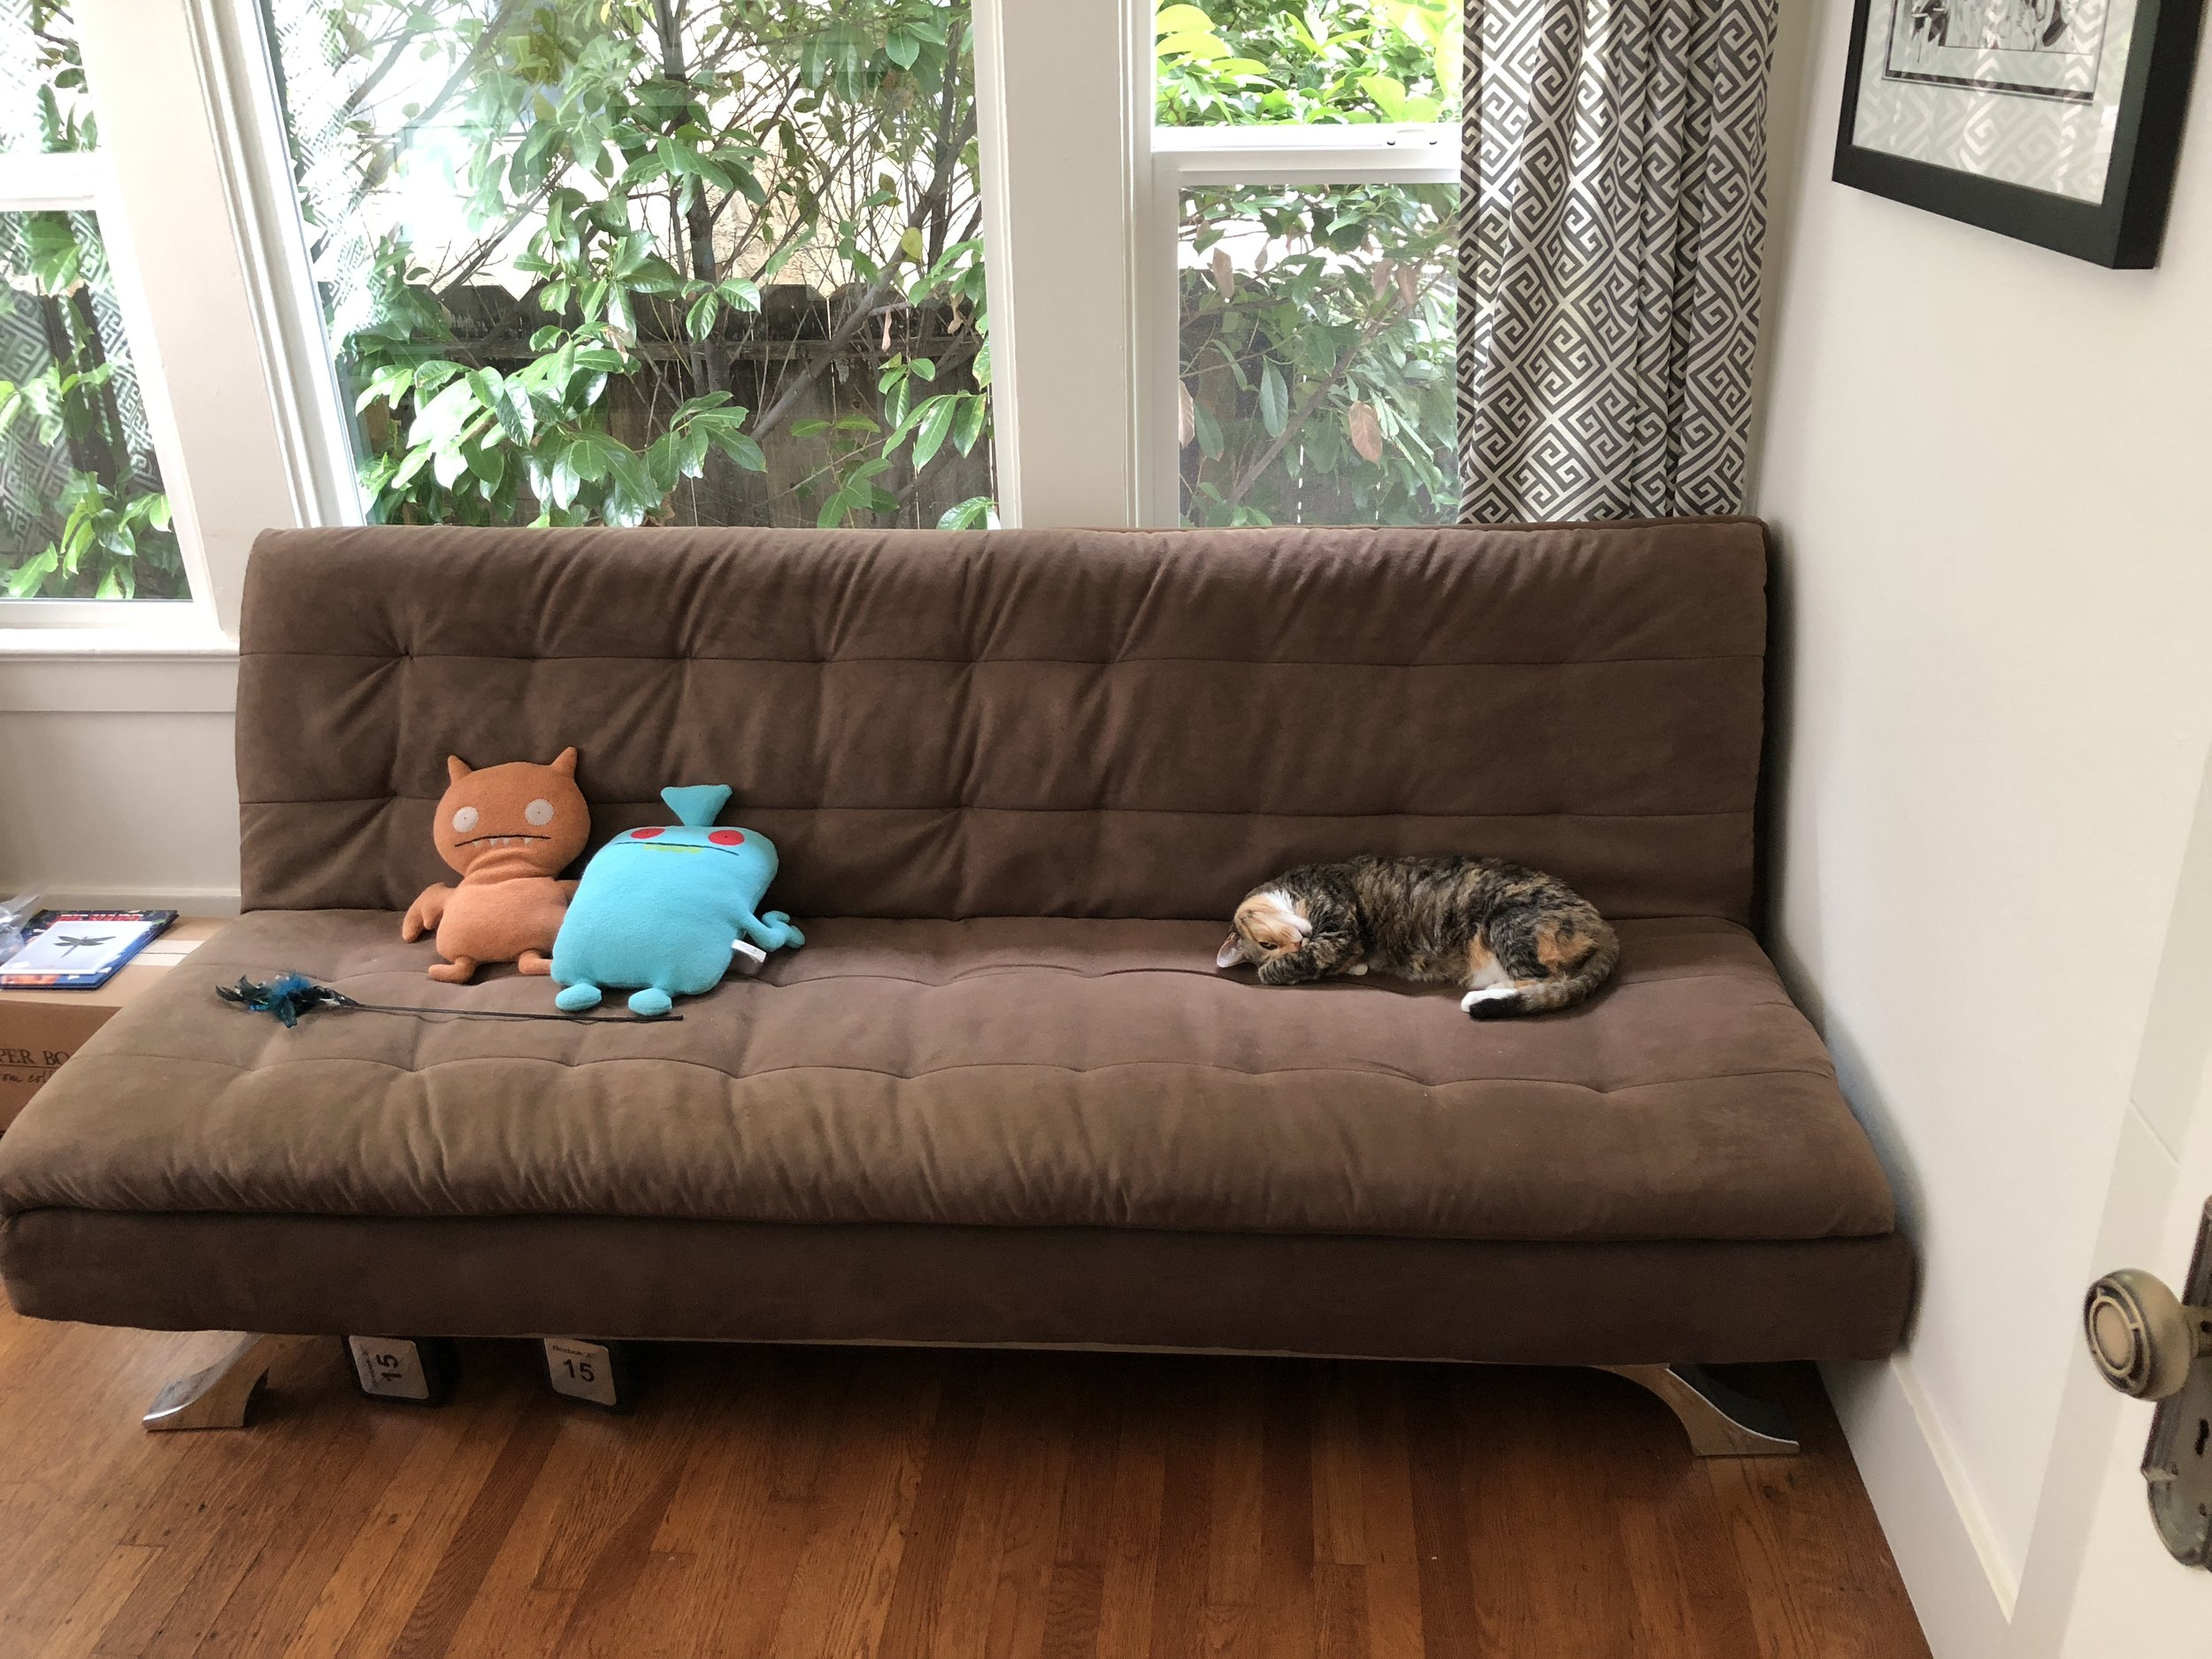 Kitty napping with a couple Uglydolls